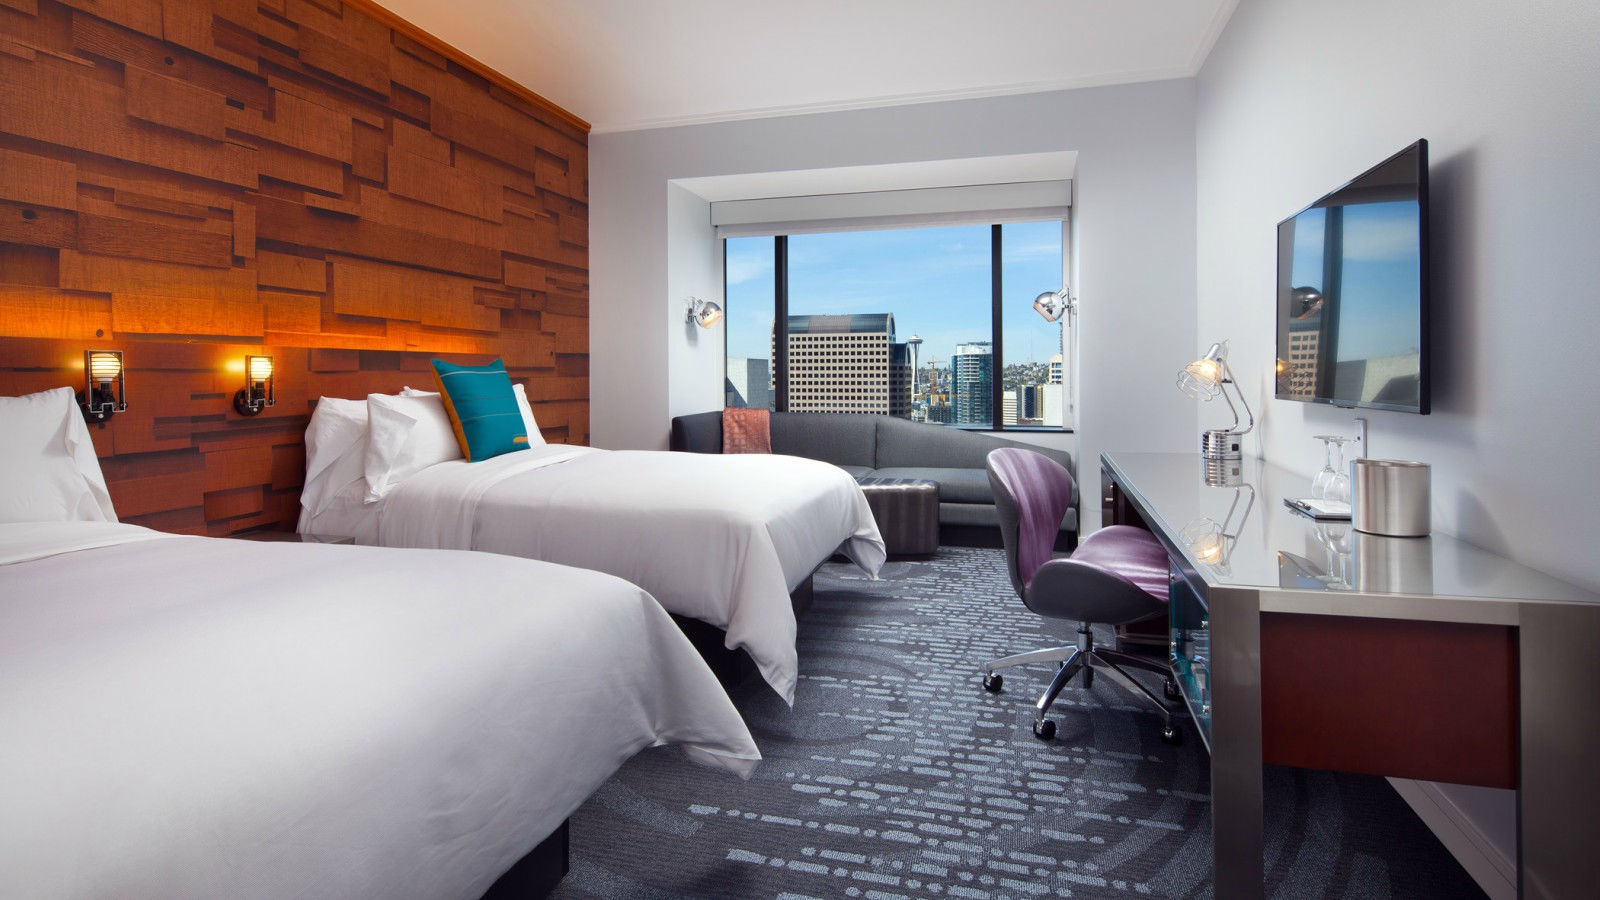 Downtown Seattle Lodging with Amenities - Guestroom